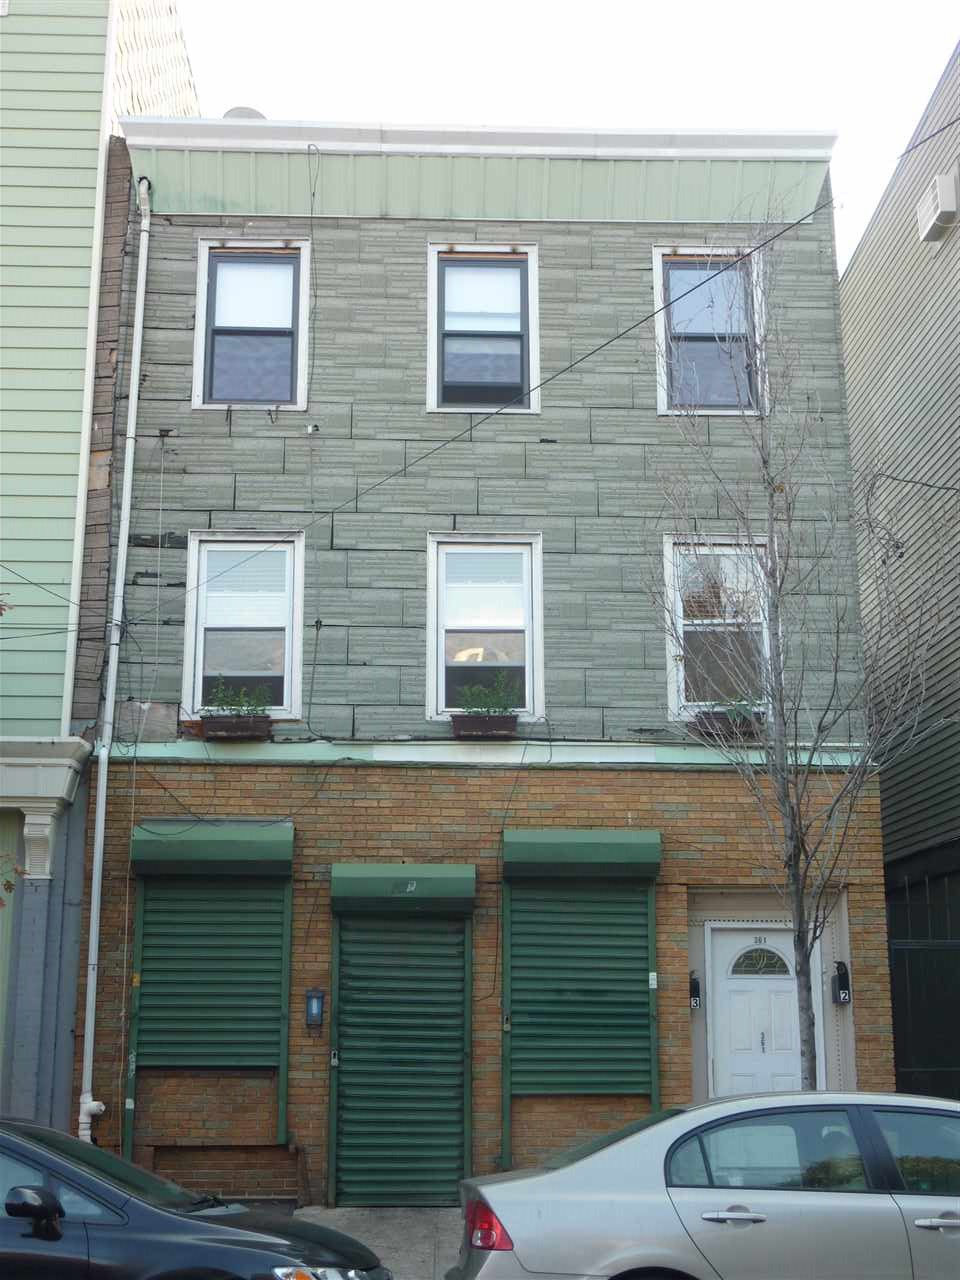 361 2ND ST, JC, Downtown, NJ 07302